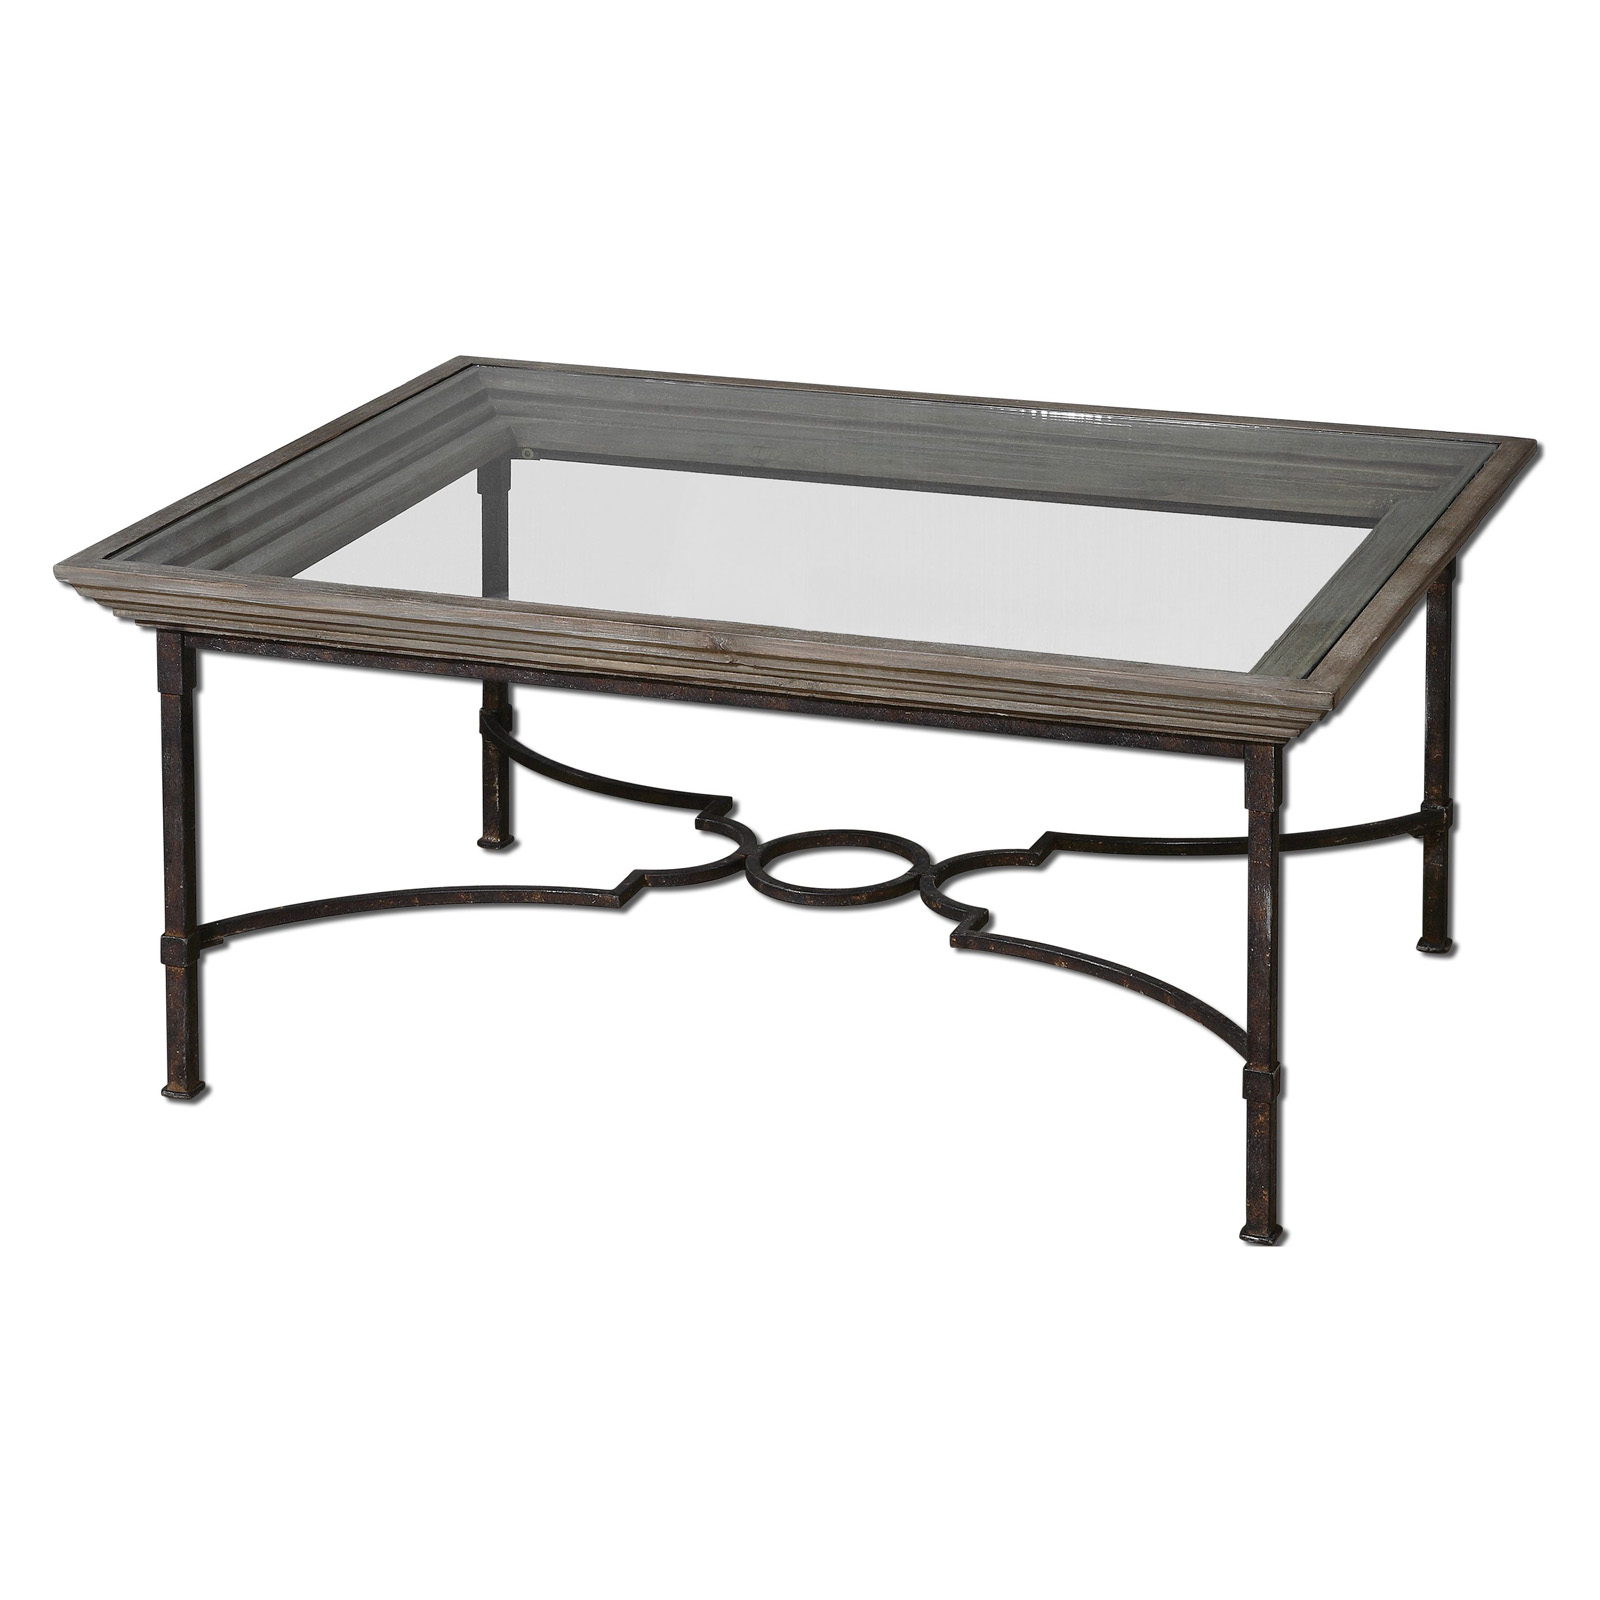 Uttermost Huxley Rectangle Weathered Iron and Glass Top Coffee